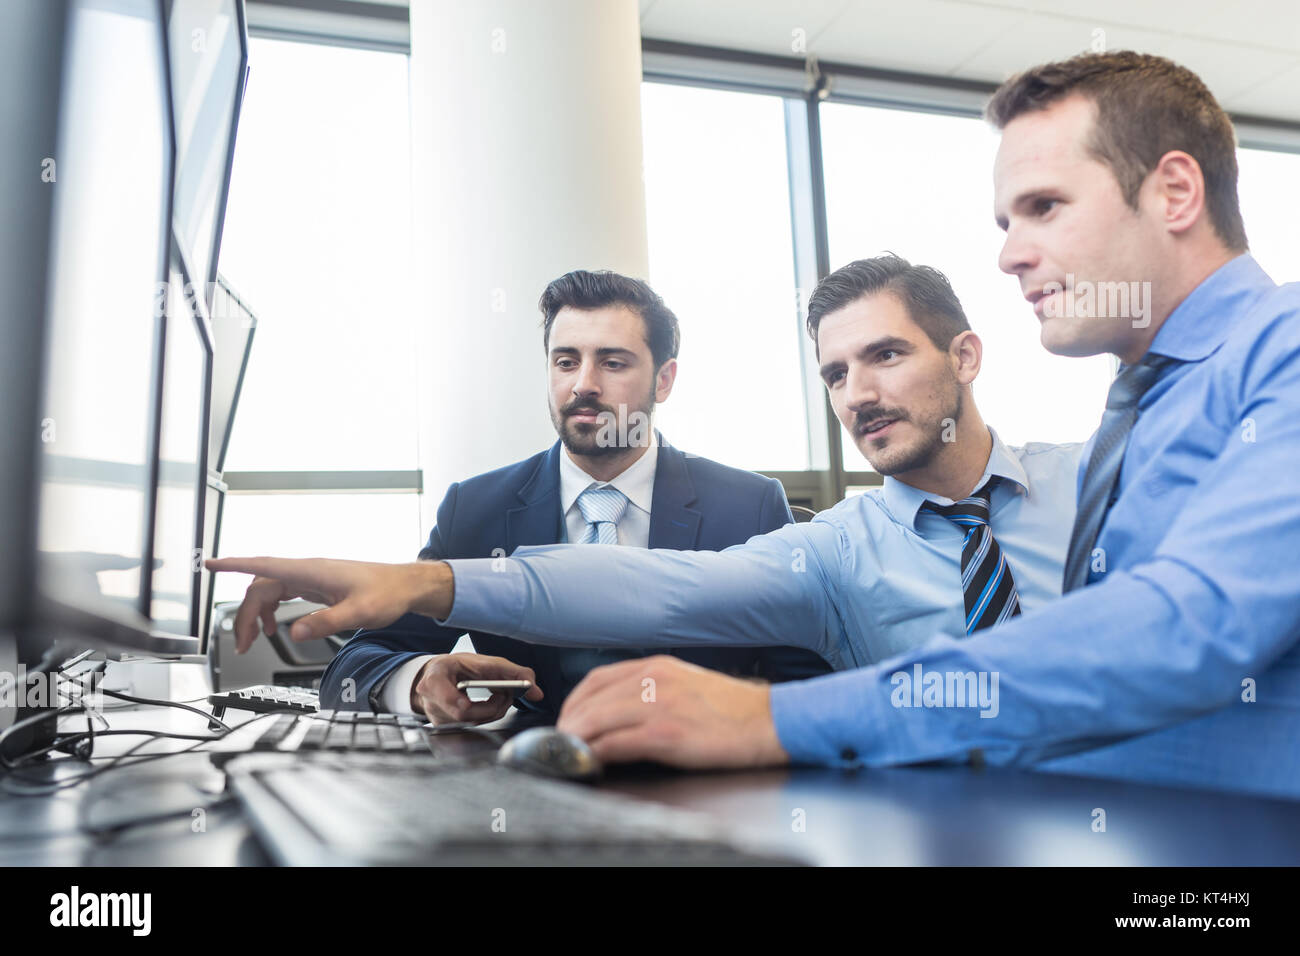 Business team working in corporate office. - Stock Image